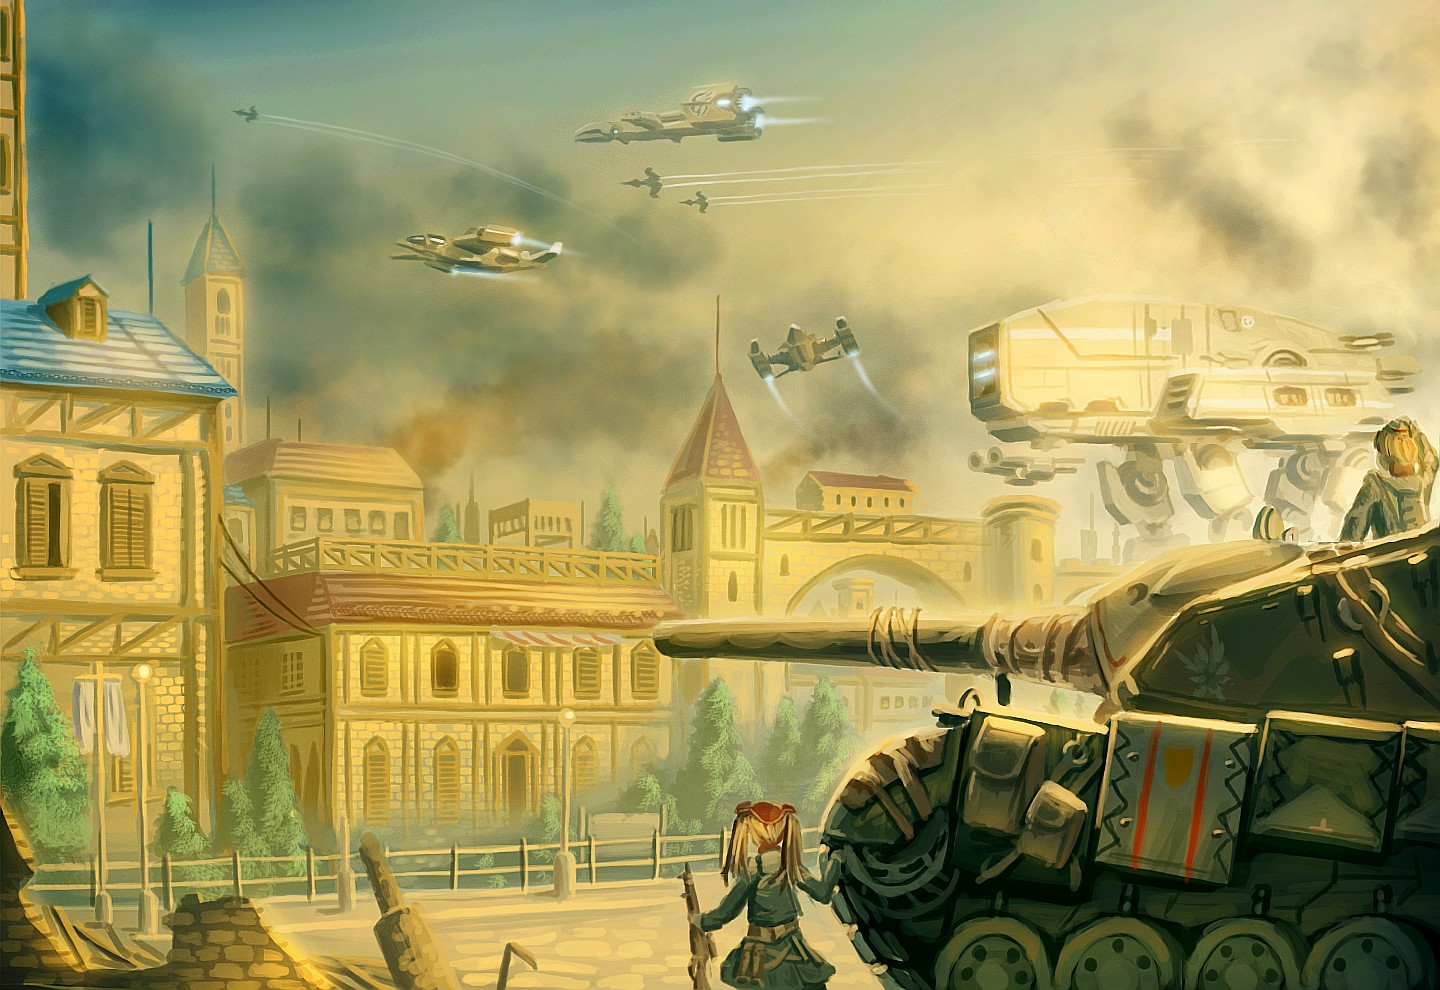 valkyria chronicles  Pesquisa Google  military anime characters 1440x990